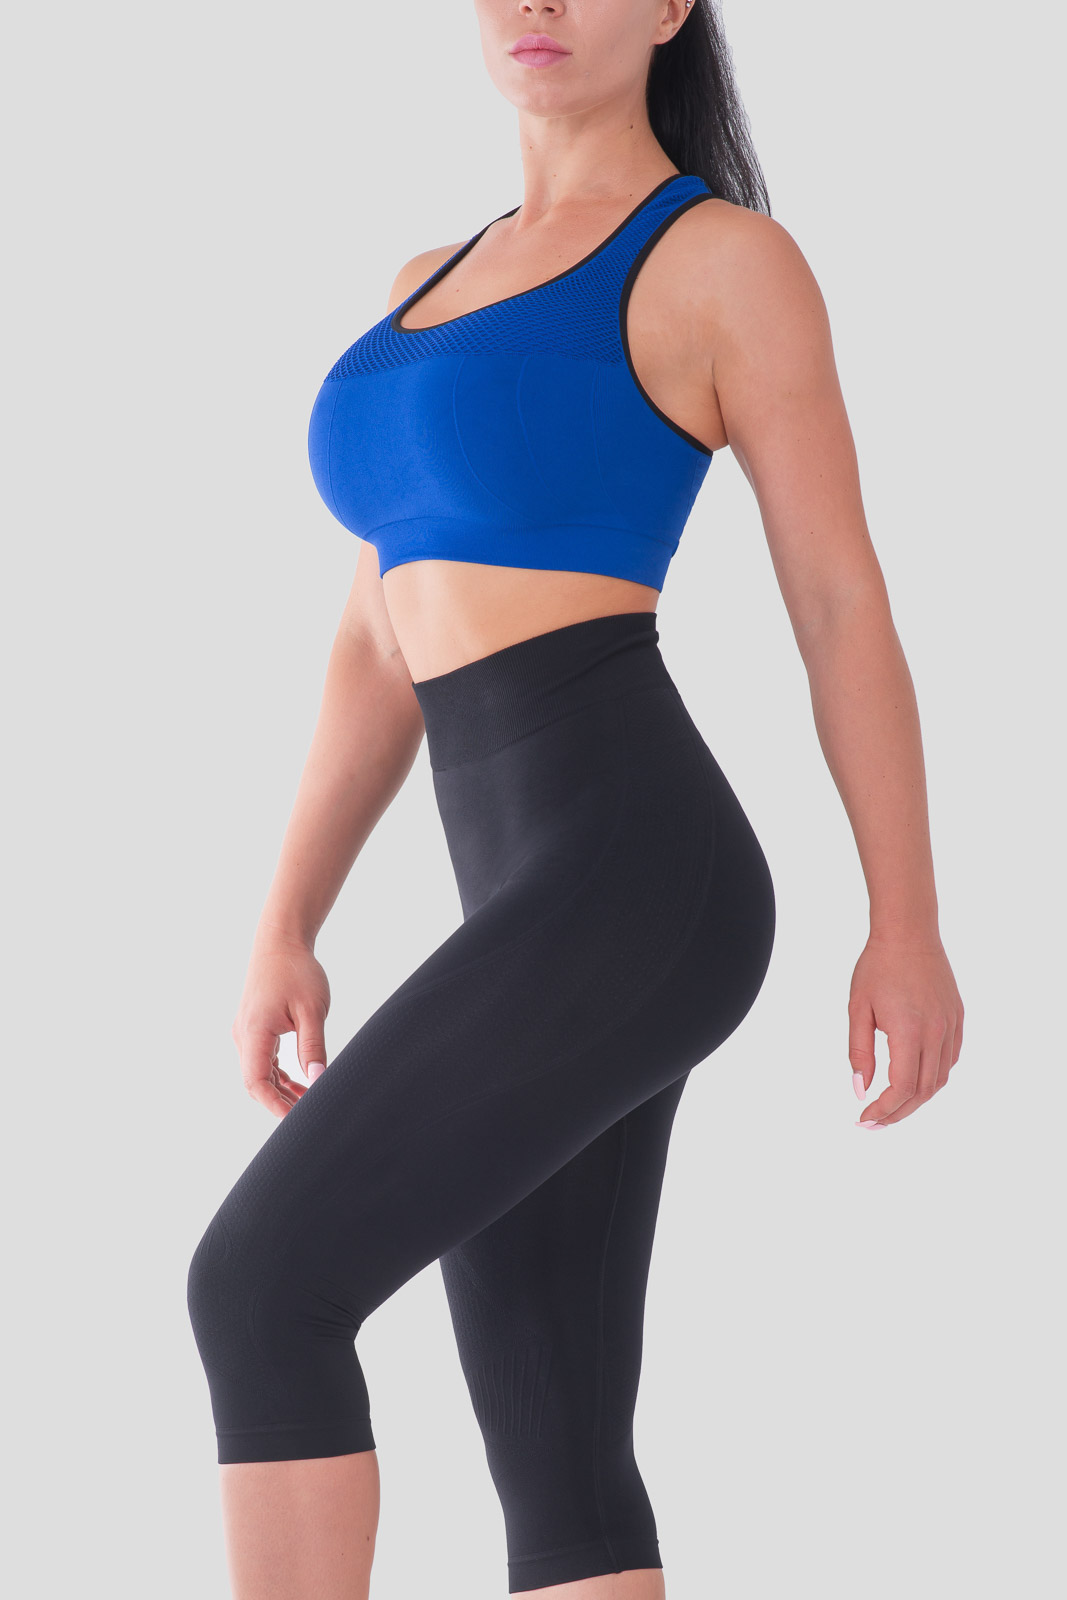 Bellissima-Women-039-s-Capri-Yoga-Pants-Seamless-High-Waisted-Workout-Leggings thumbnail 16